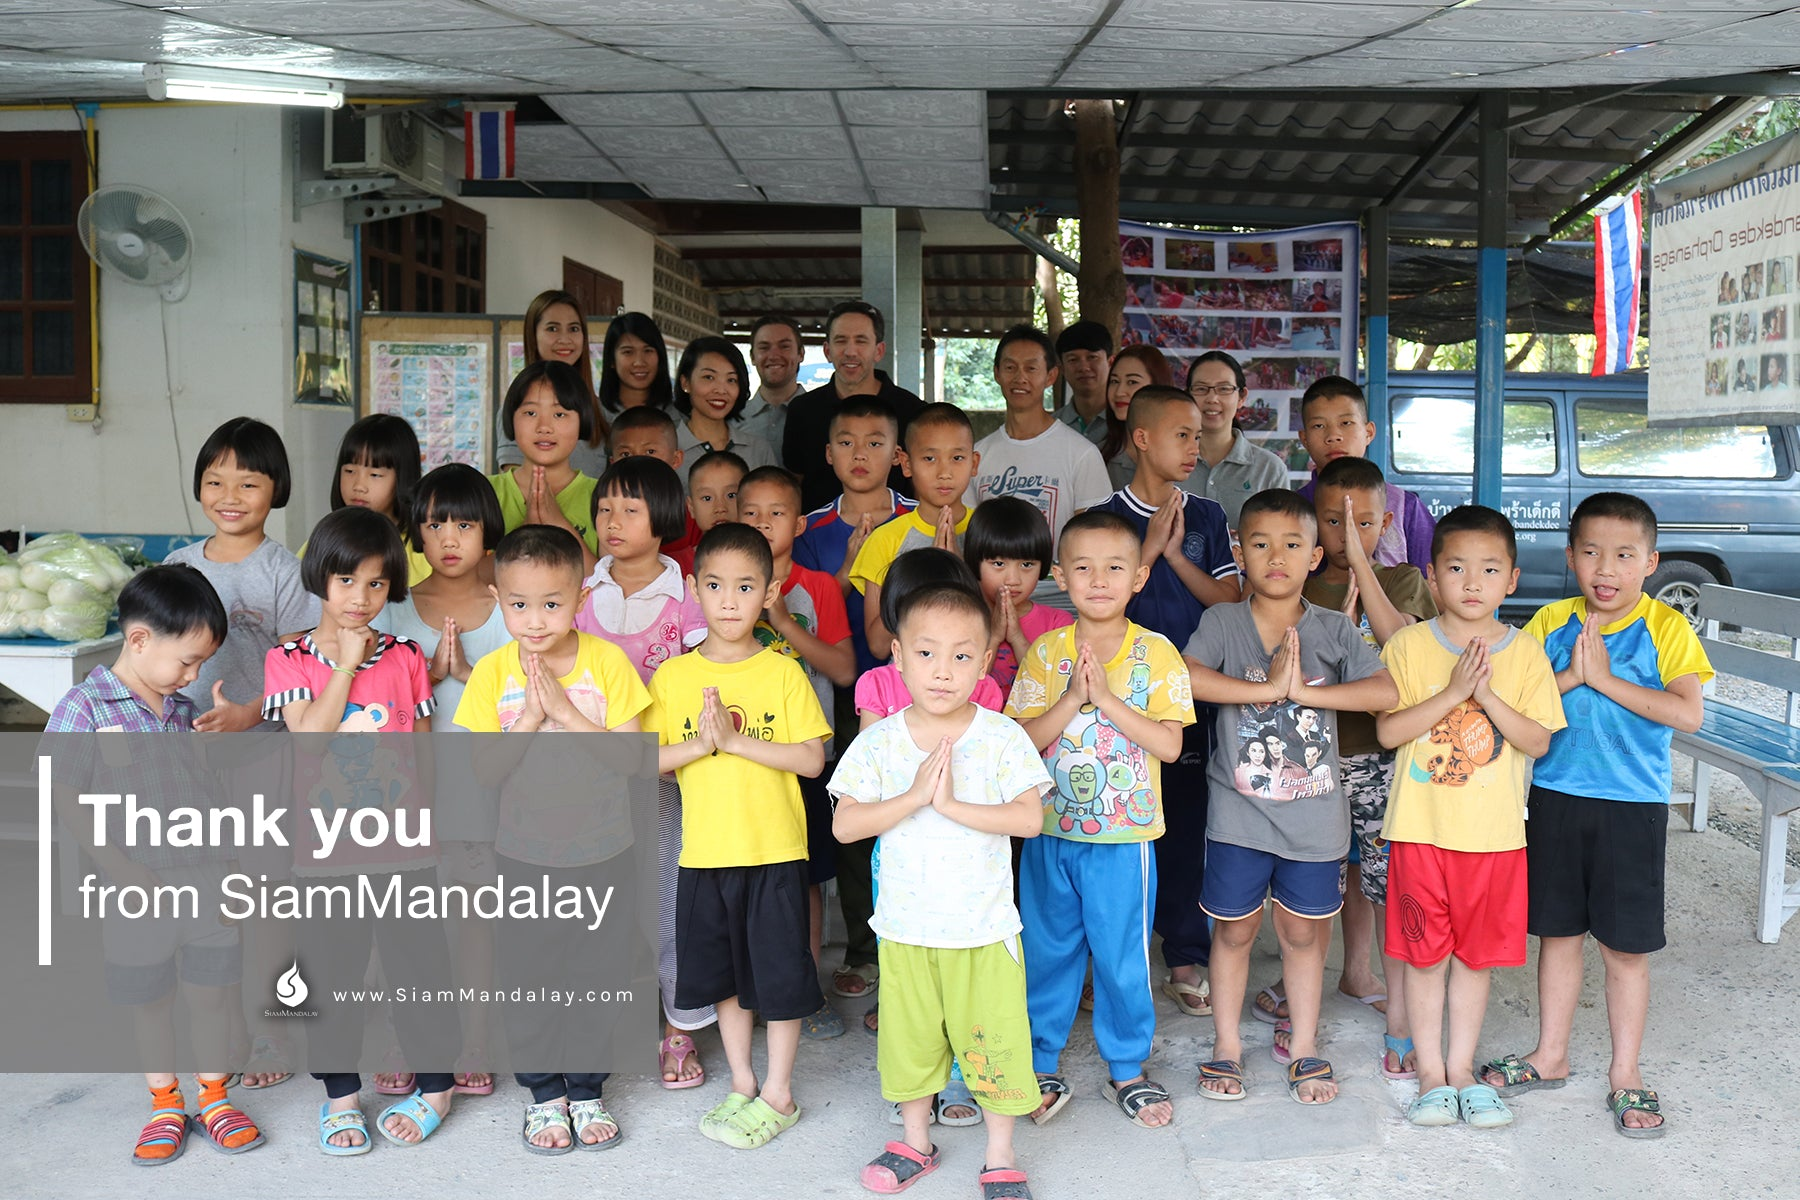 Thank You from SiamMandalay